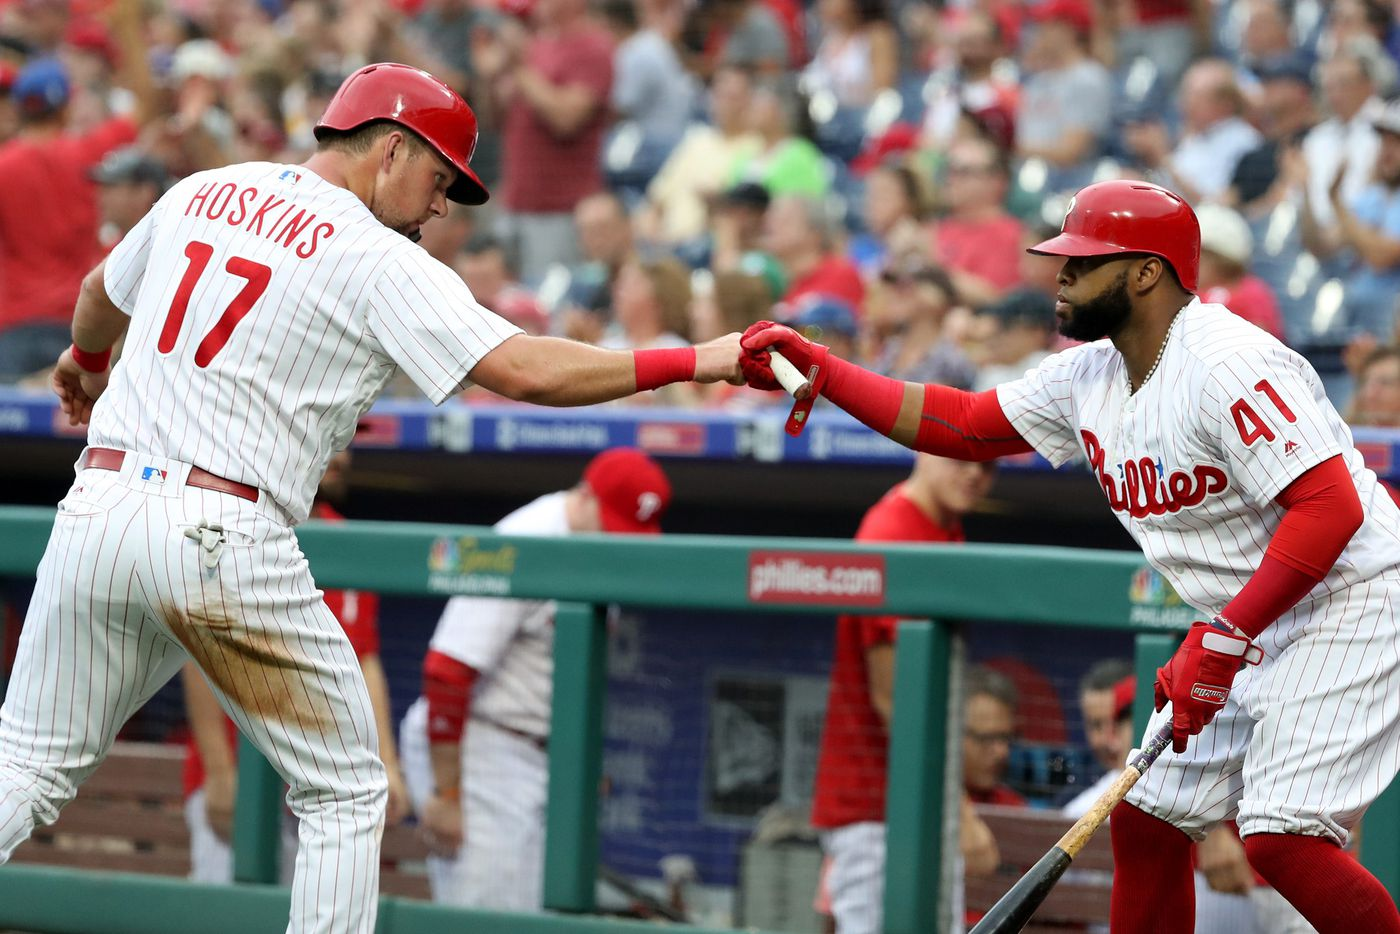 Phillies to open 2019 schedule against the Braves